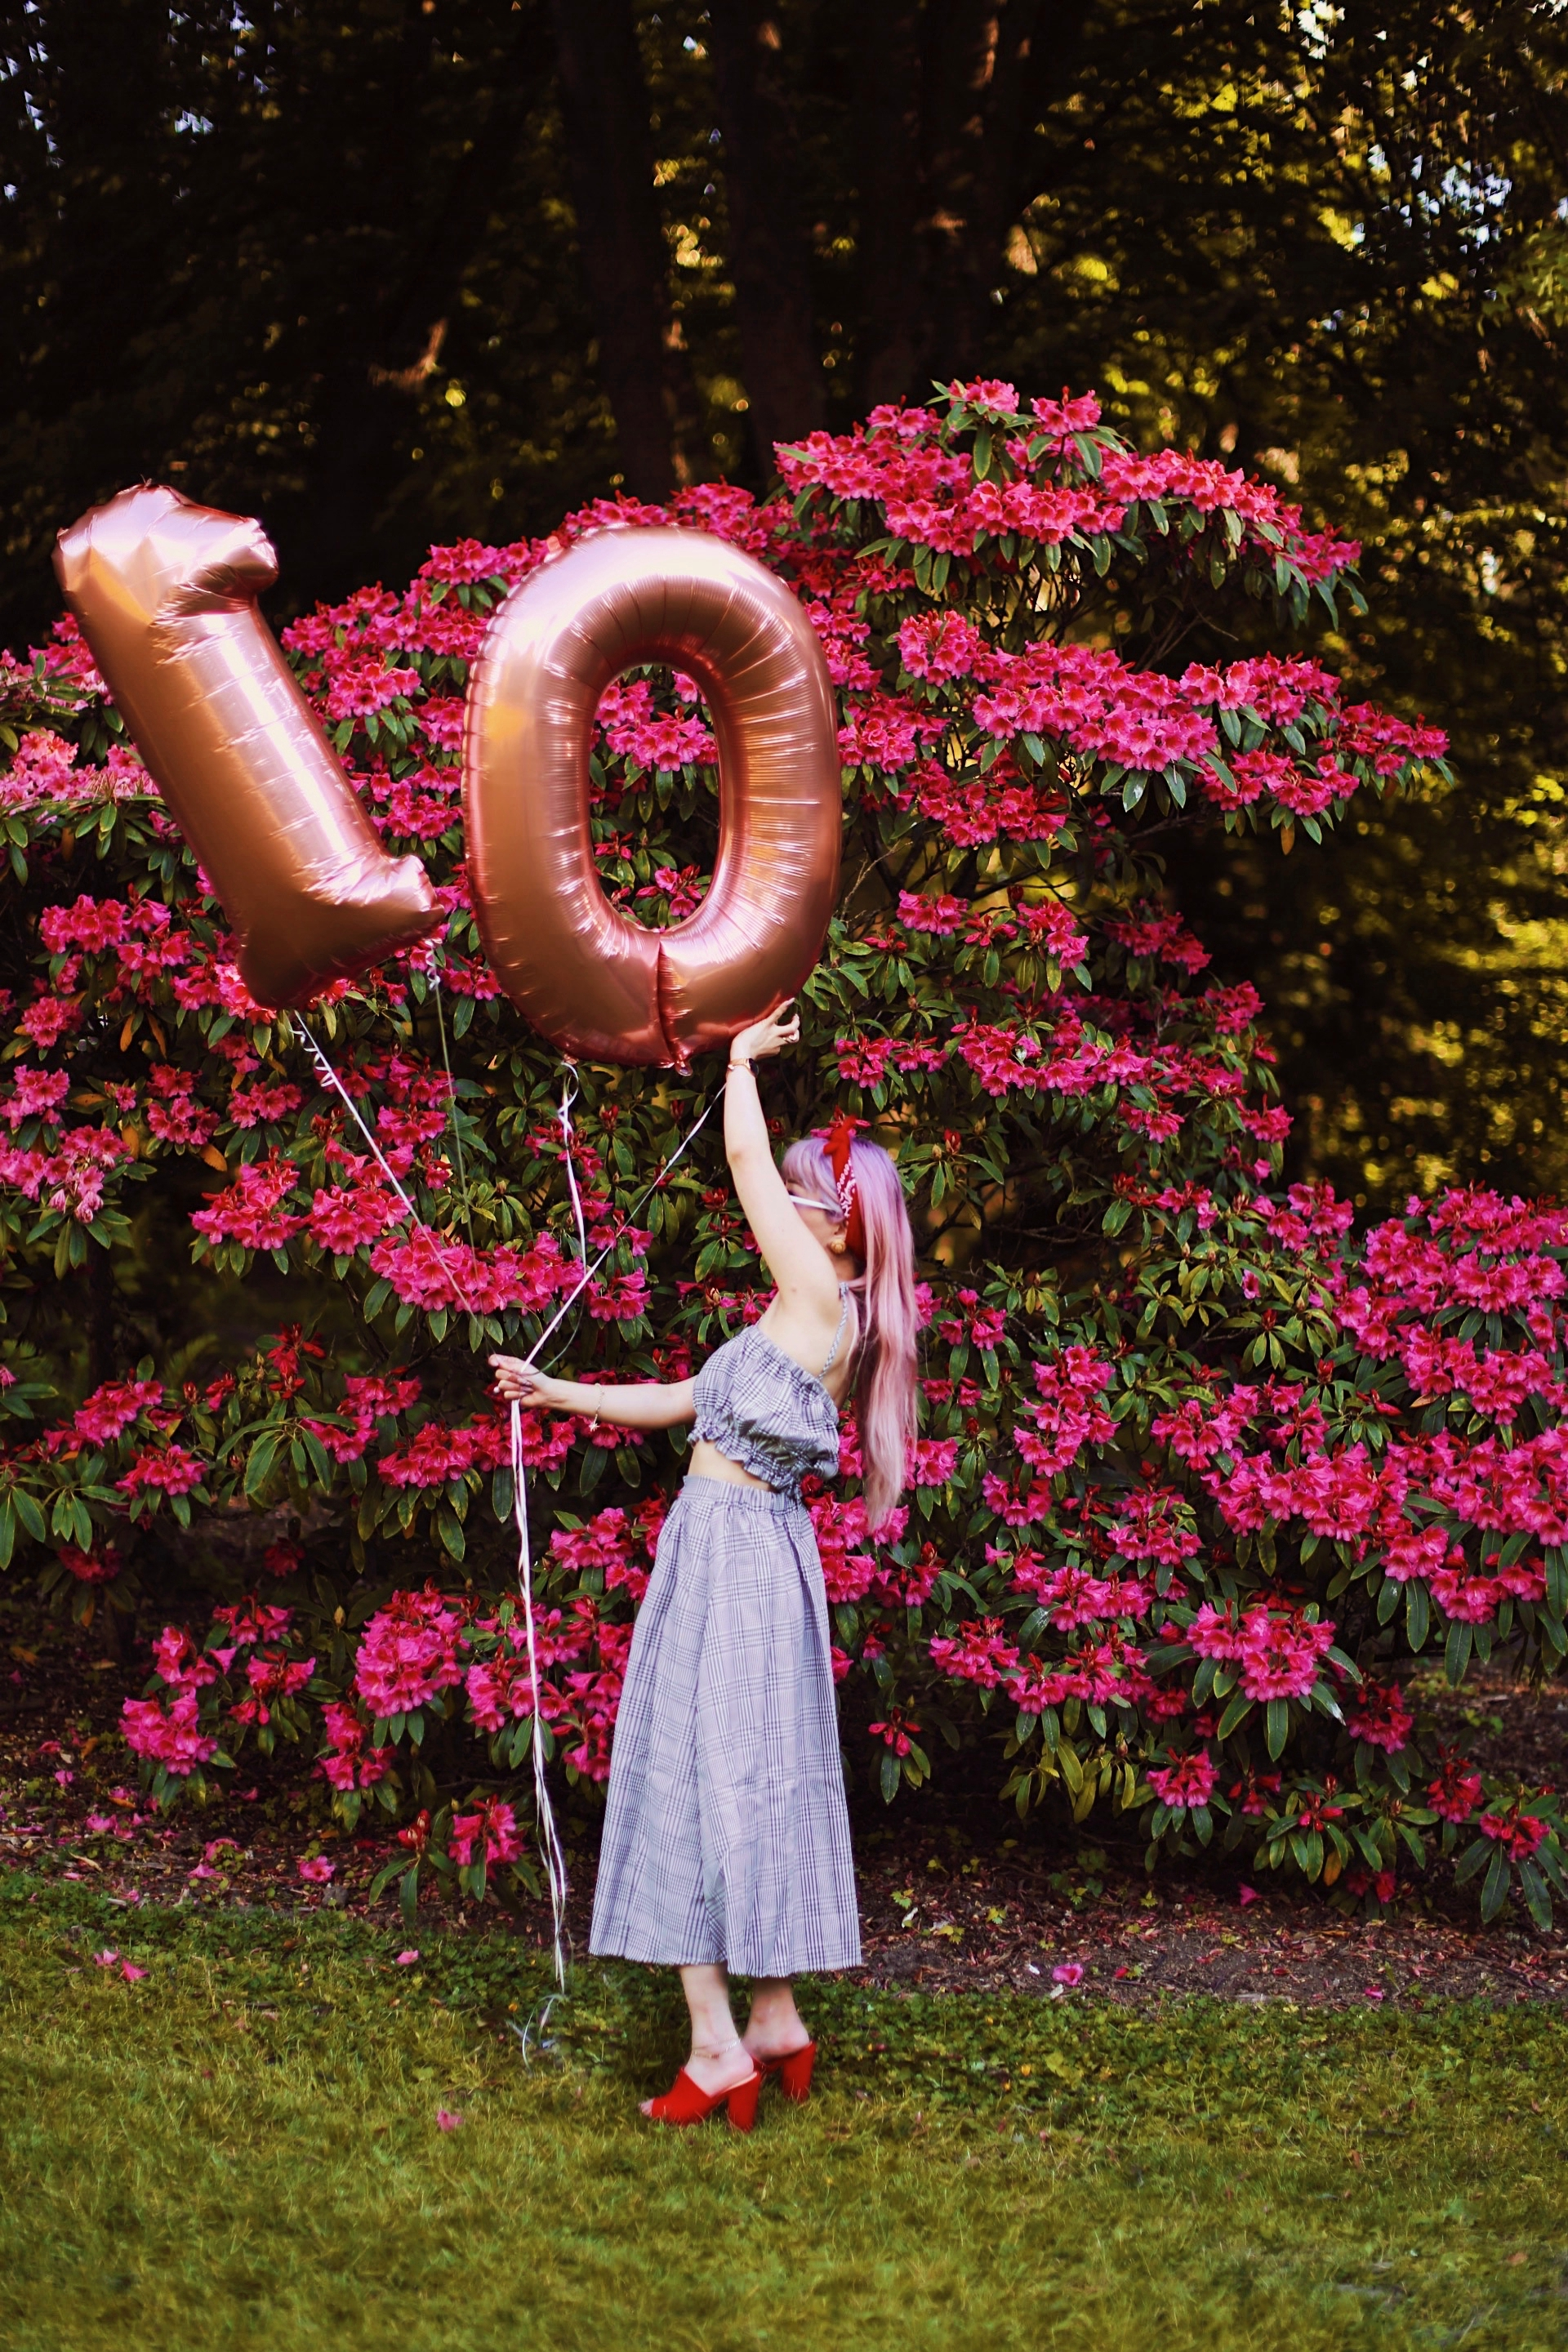 Aika's Love Closet-Seattle Style Life Style Blogger-Japanese-10 Year Anniversary-living in America-what I've learned from Living Abroad-life lessons-pink hair-zero uv heart sunglasses-rose gold balloons-smile 7